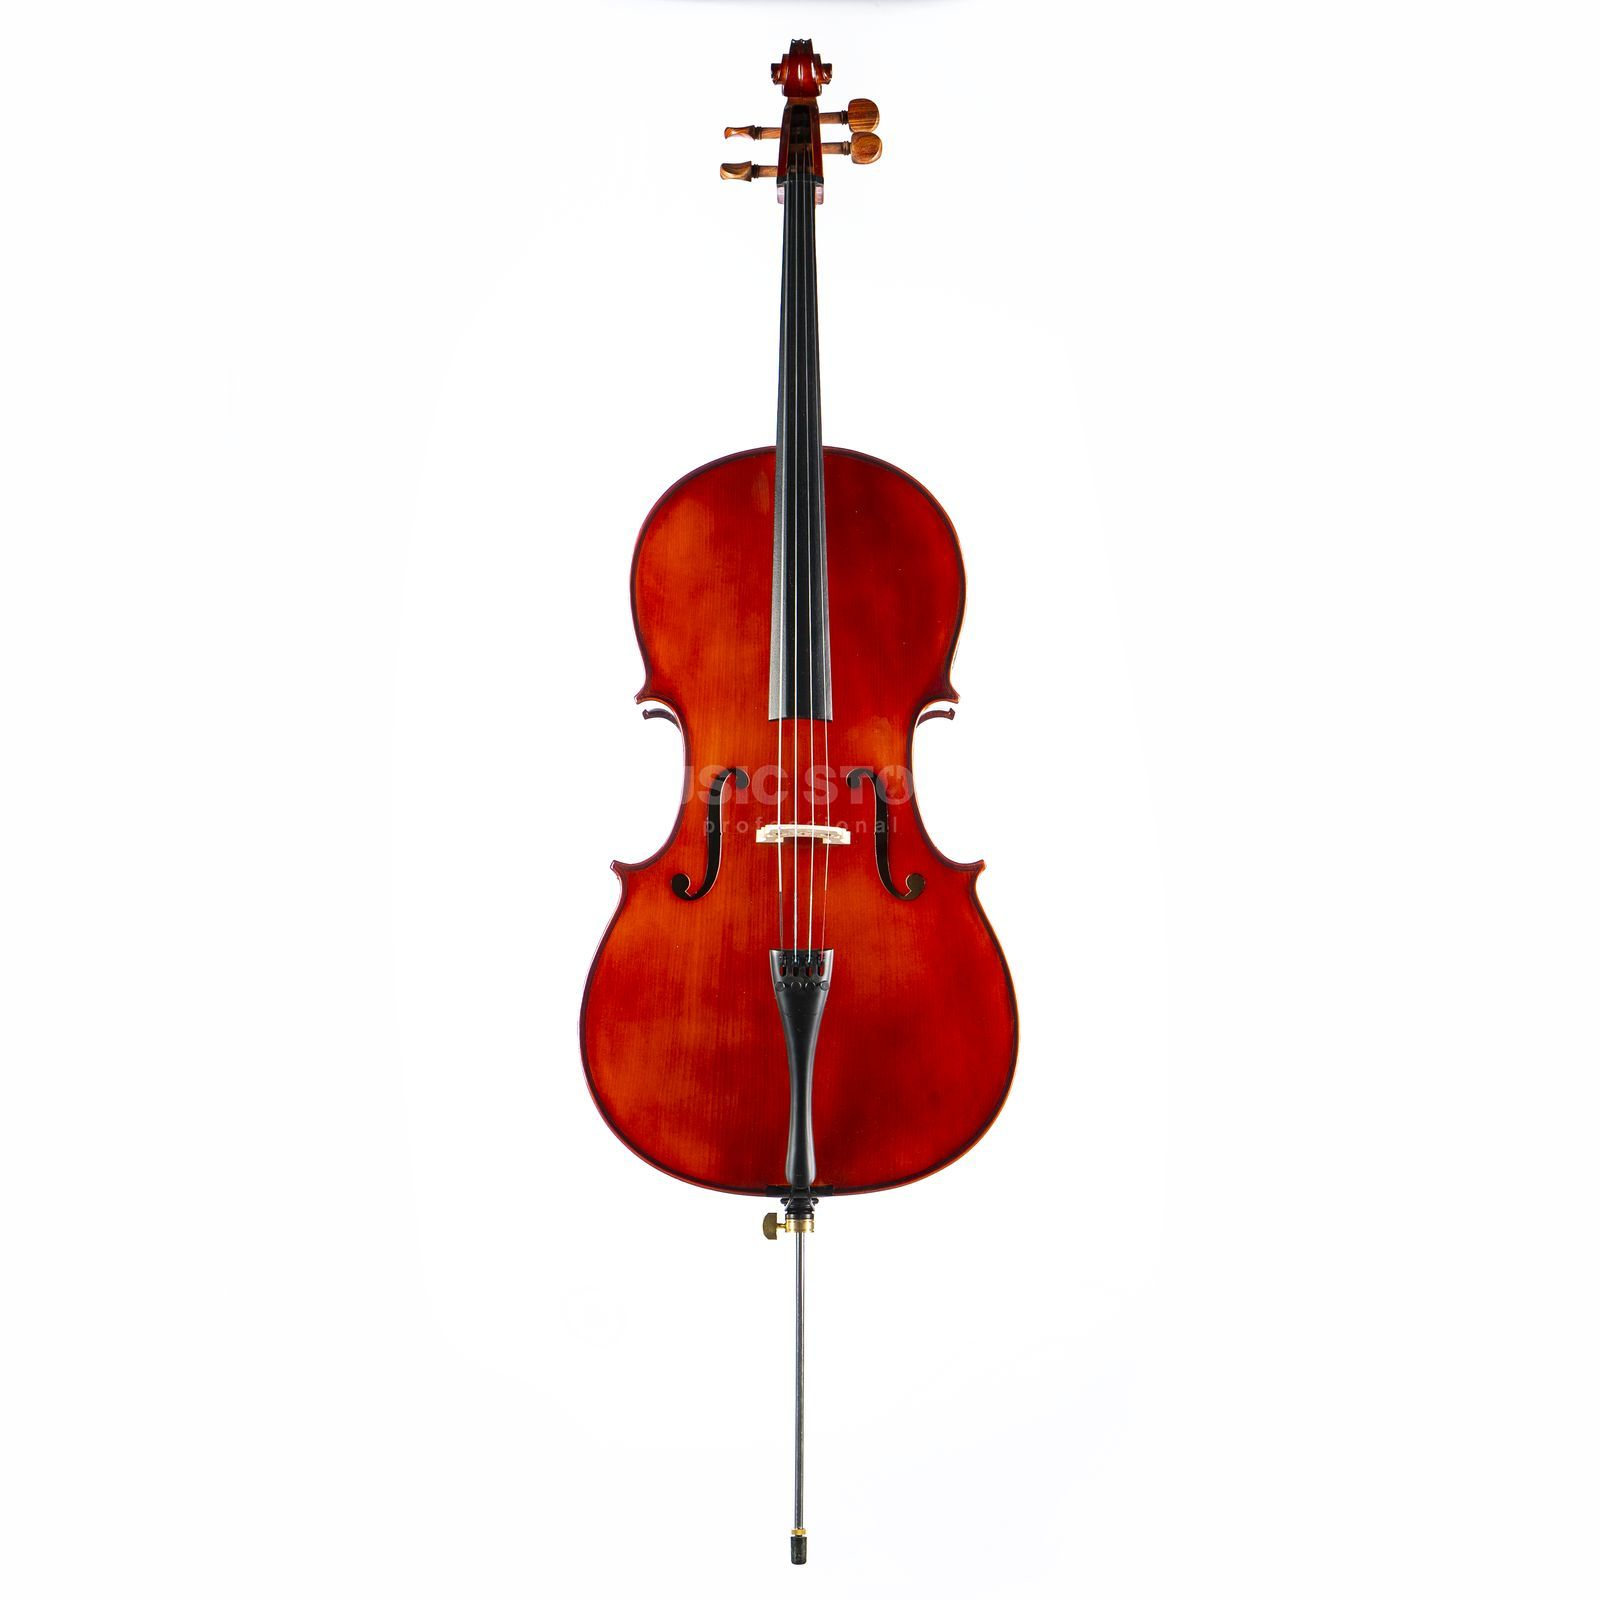 Primavera 90 - 3/4 Cello outfit CF015 incl. Case and Bow Image du produit